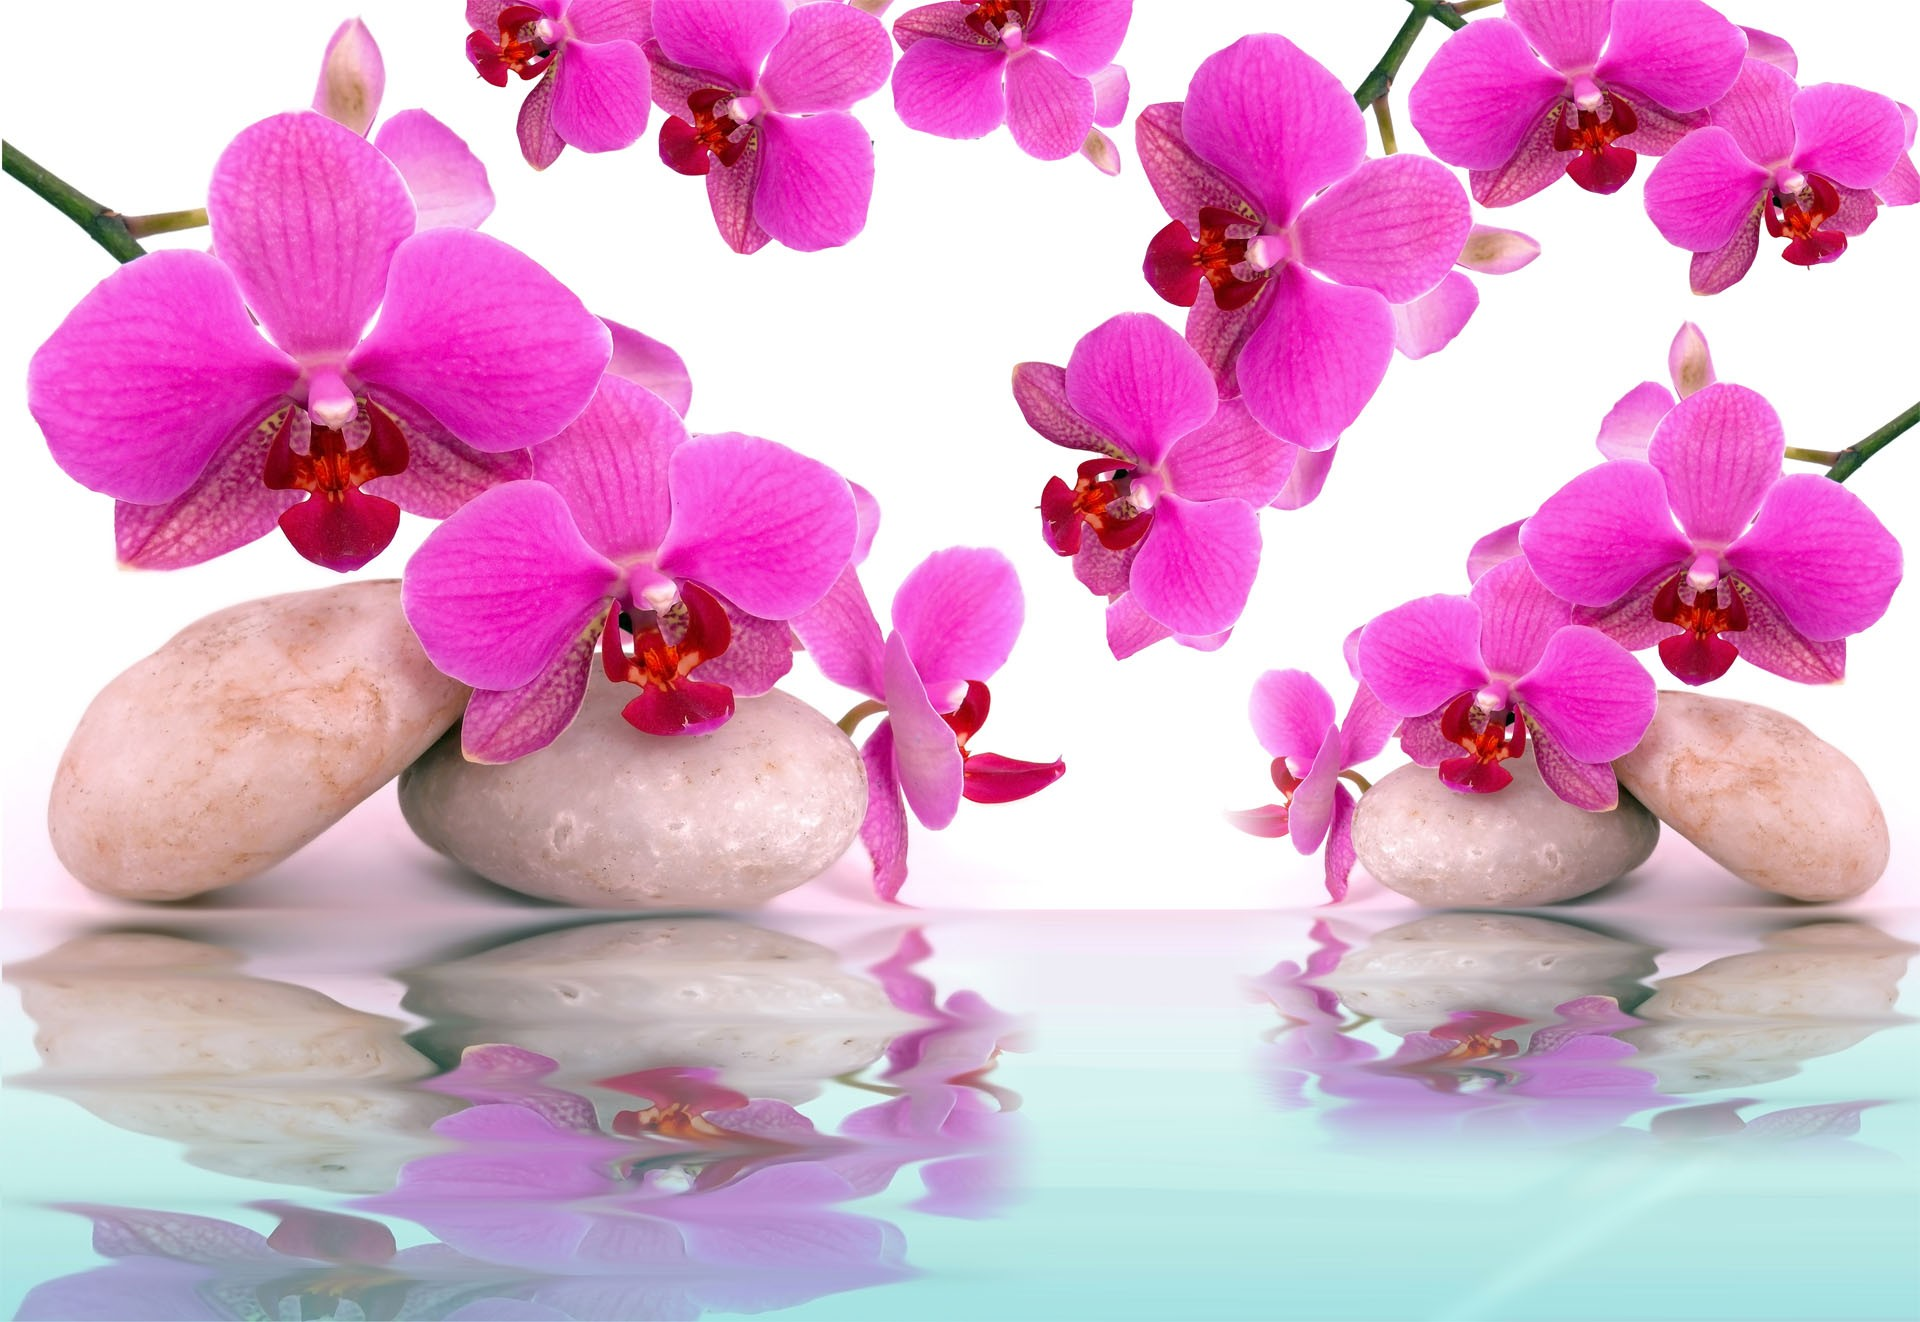 Wallpaper steine blumen  Pink Orchids Full HD Wallpaper and Hintergrund | 1920x1322 | ID:693302